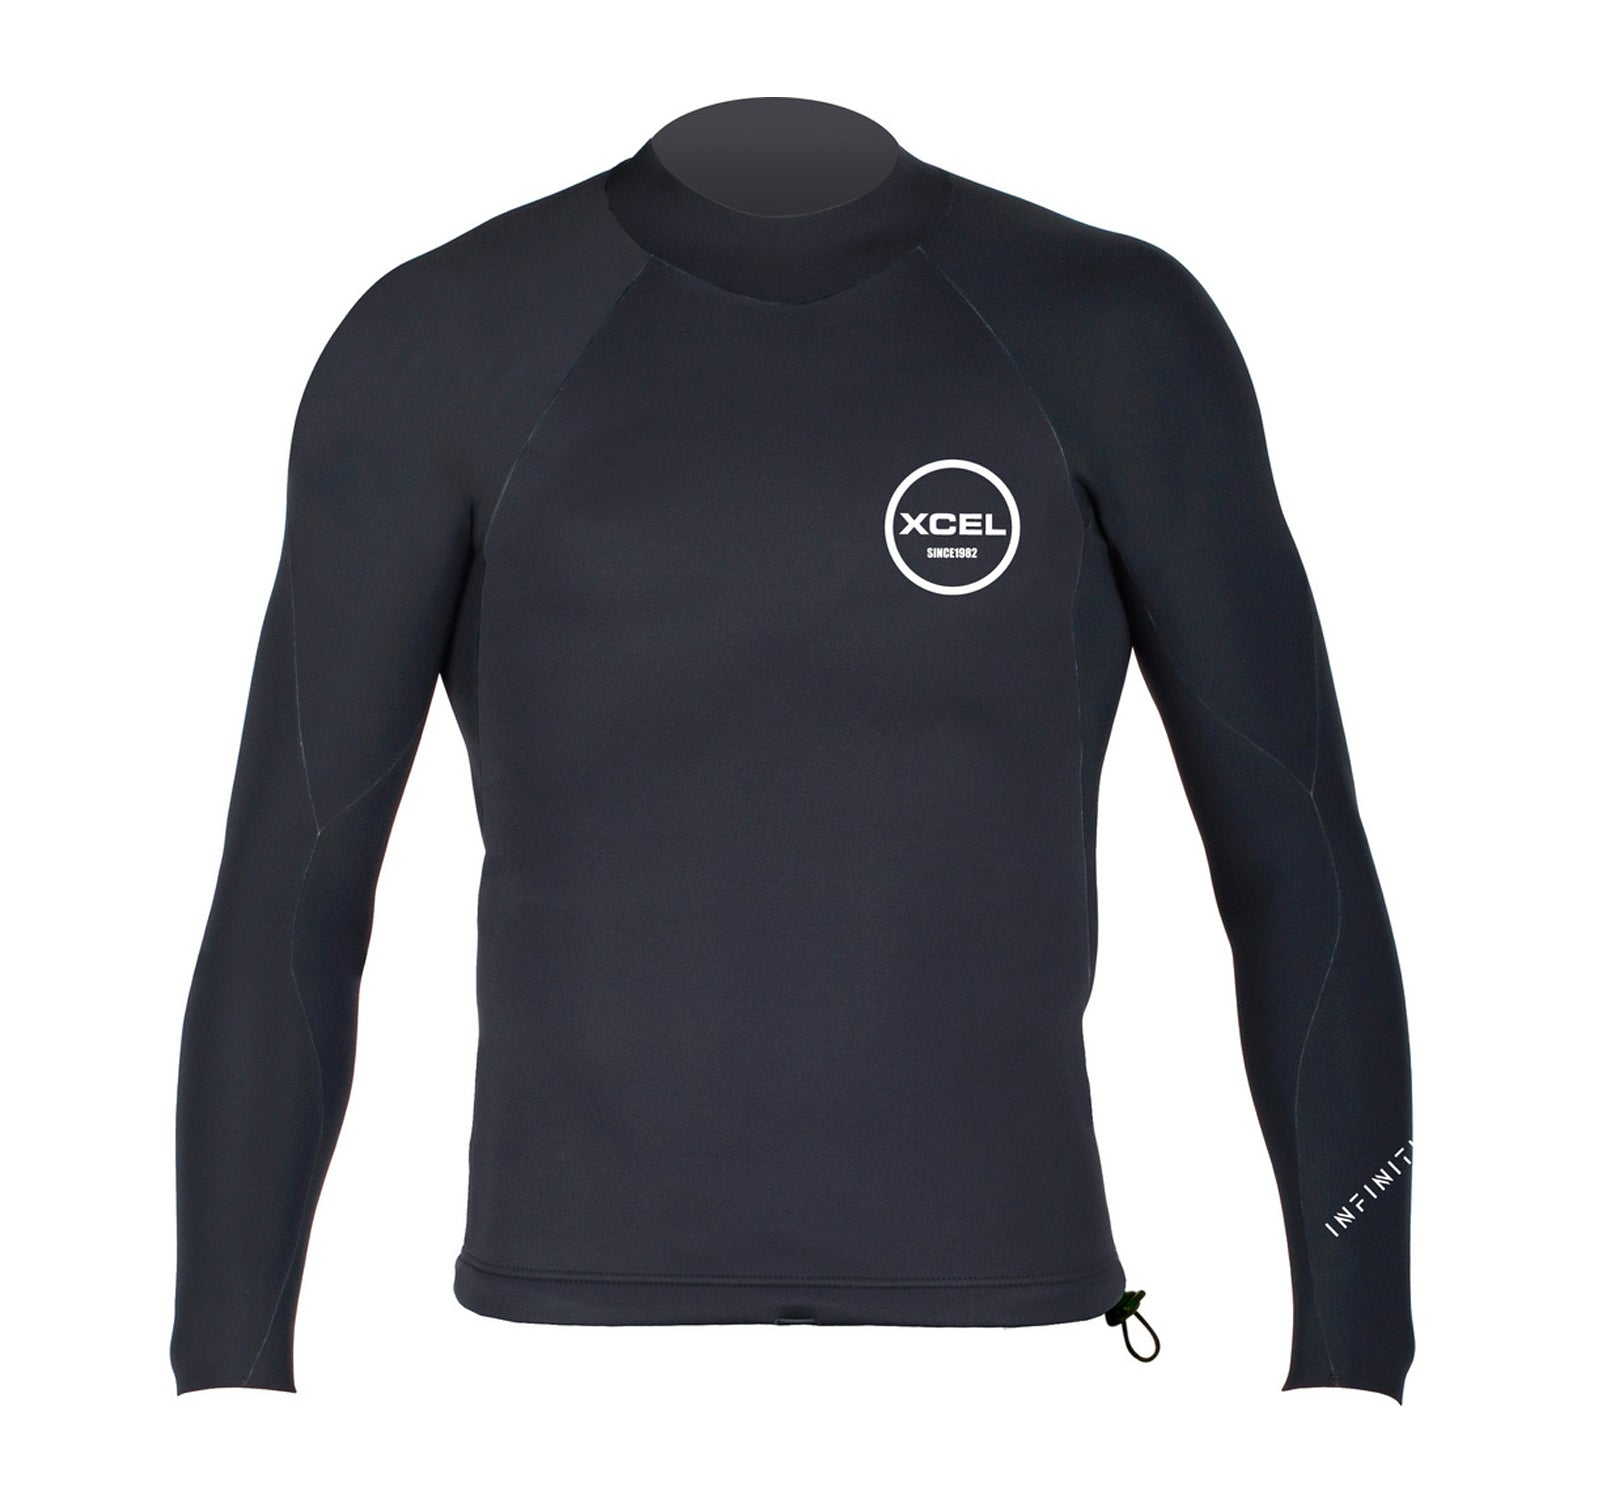 Xcel Infiniti 1.5mm Men's L/S Wetsuit Top